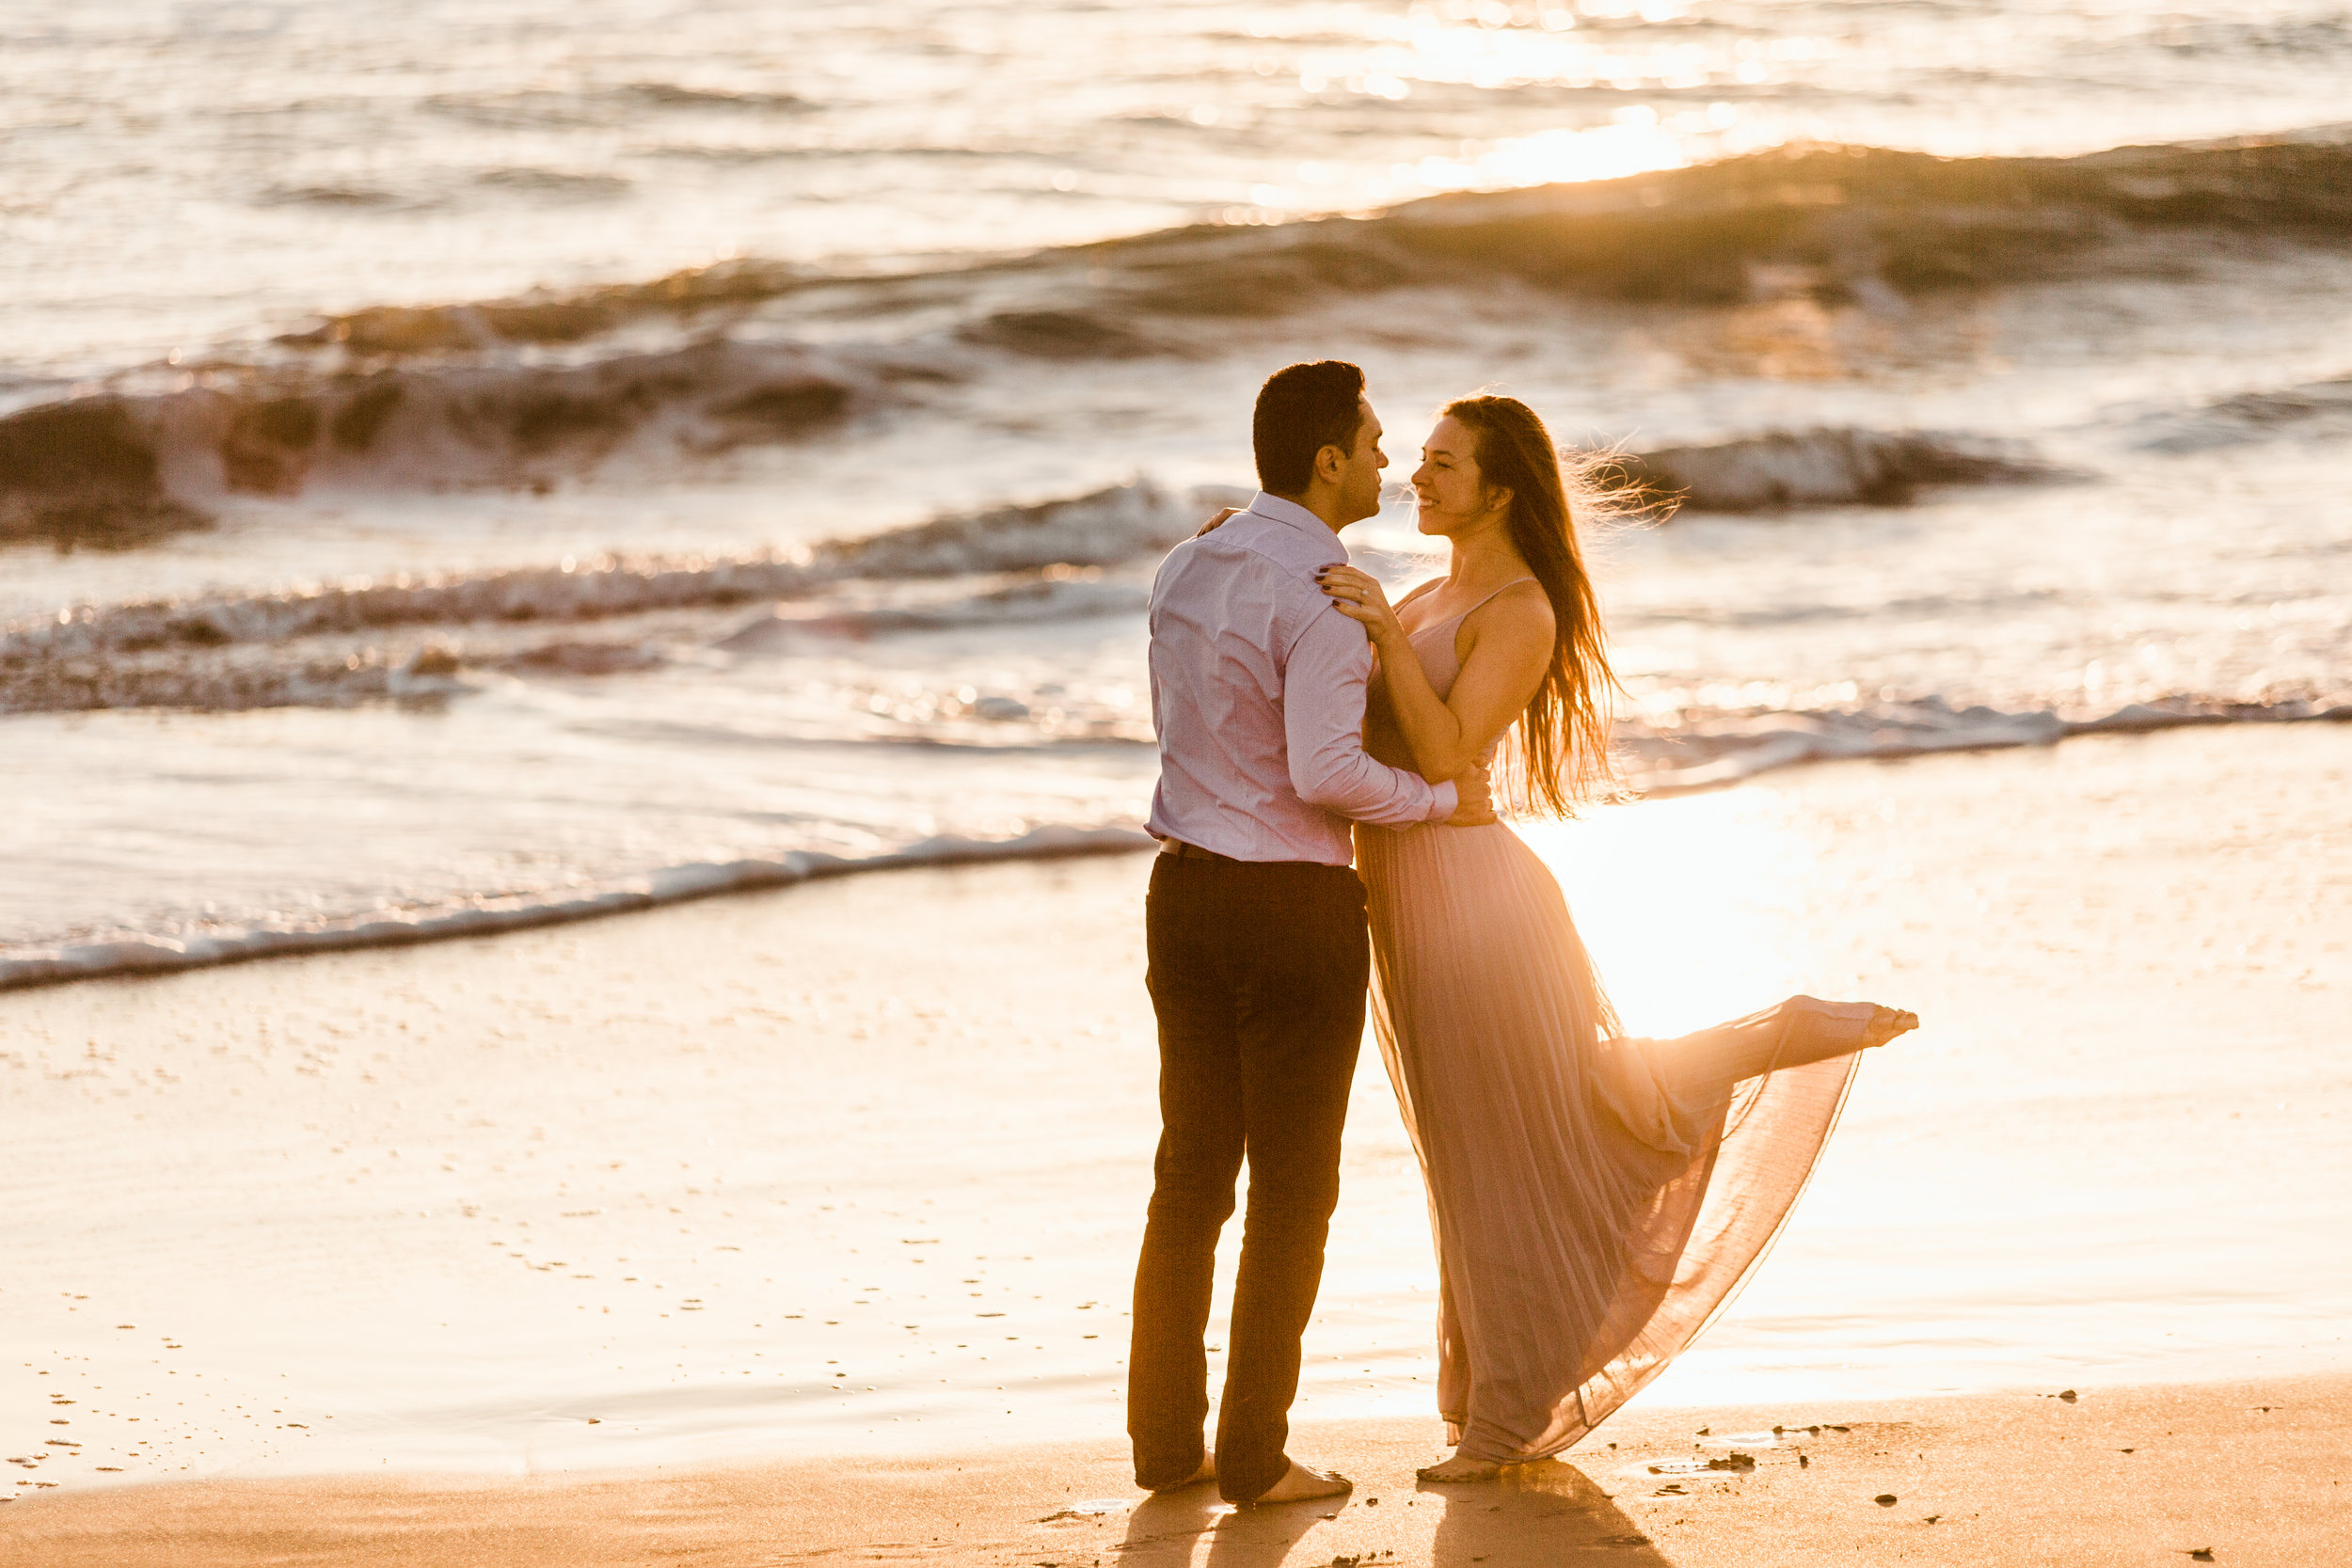 Elya + Andres - Cocoa Beach Engagement - boho bride organic eucalpytus crown mermaid forest2.jpg